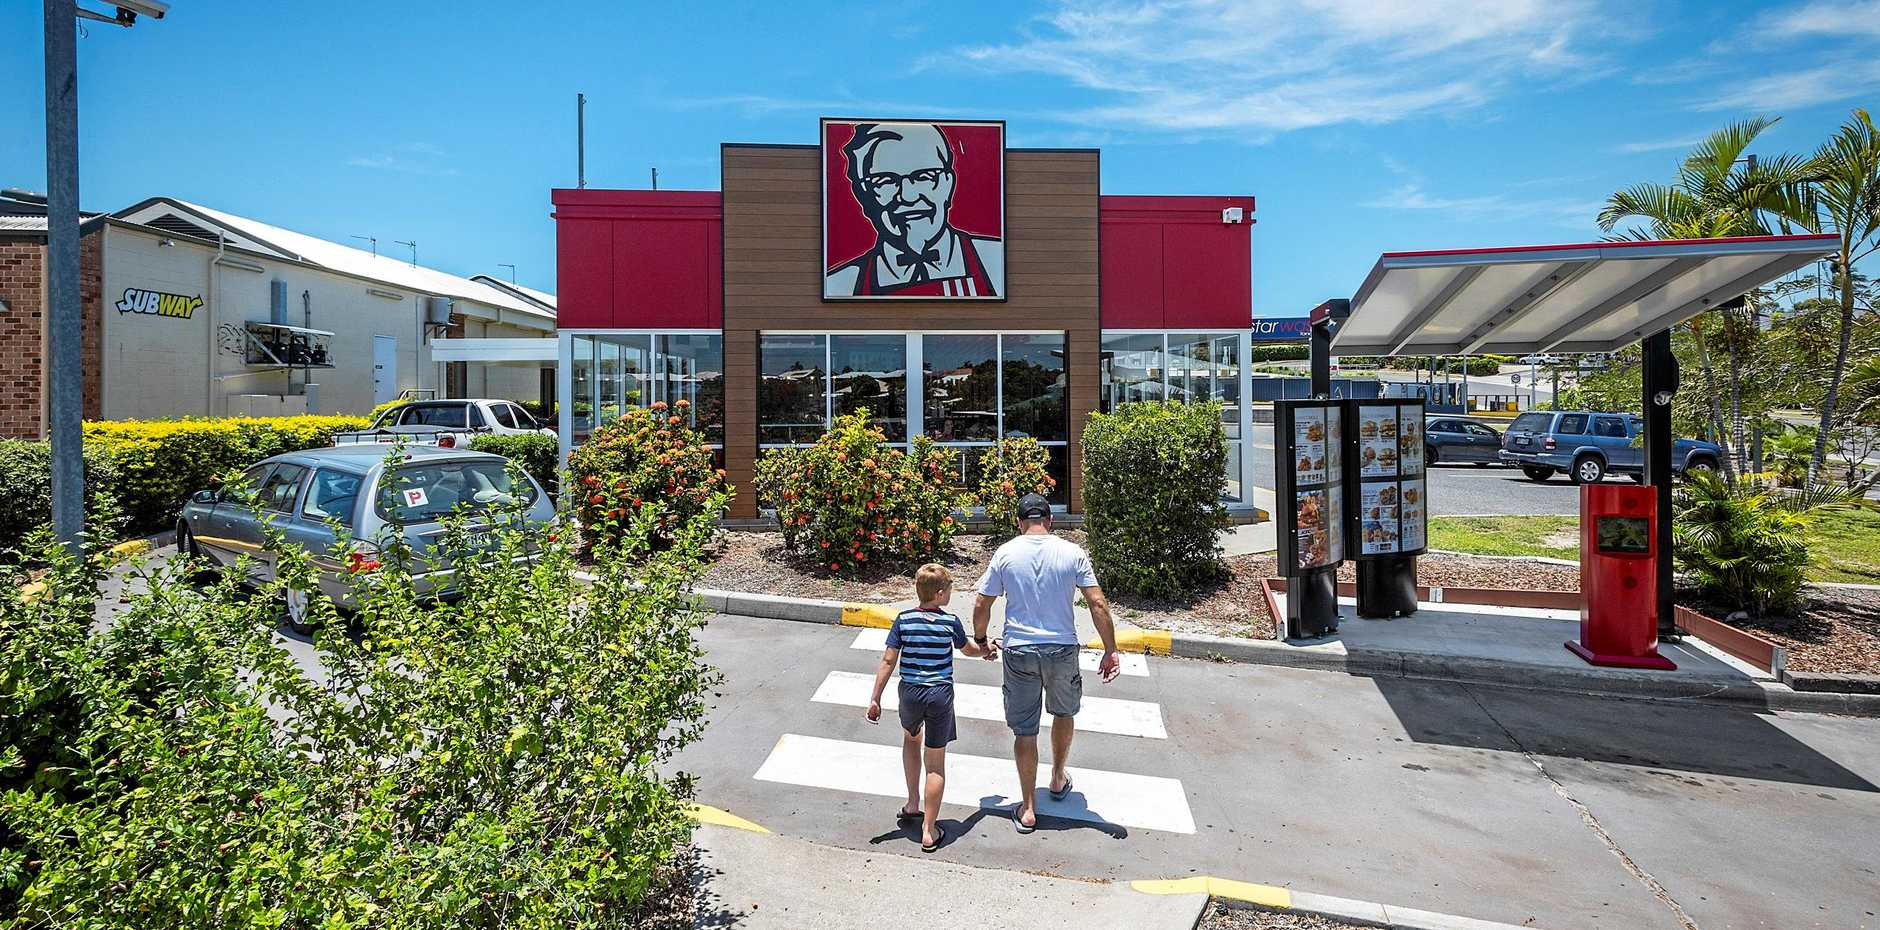 The incident happened near KFC at Tannum Sands, the court was told.